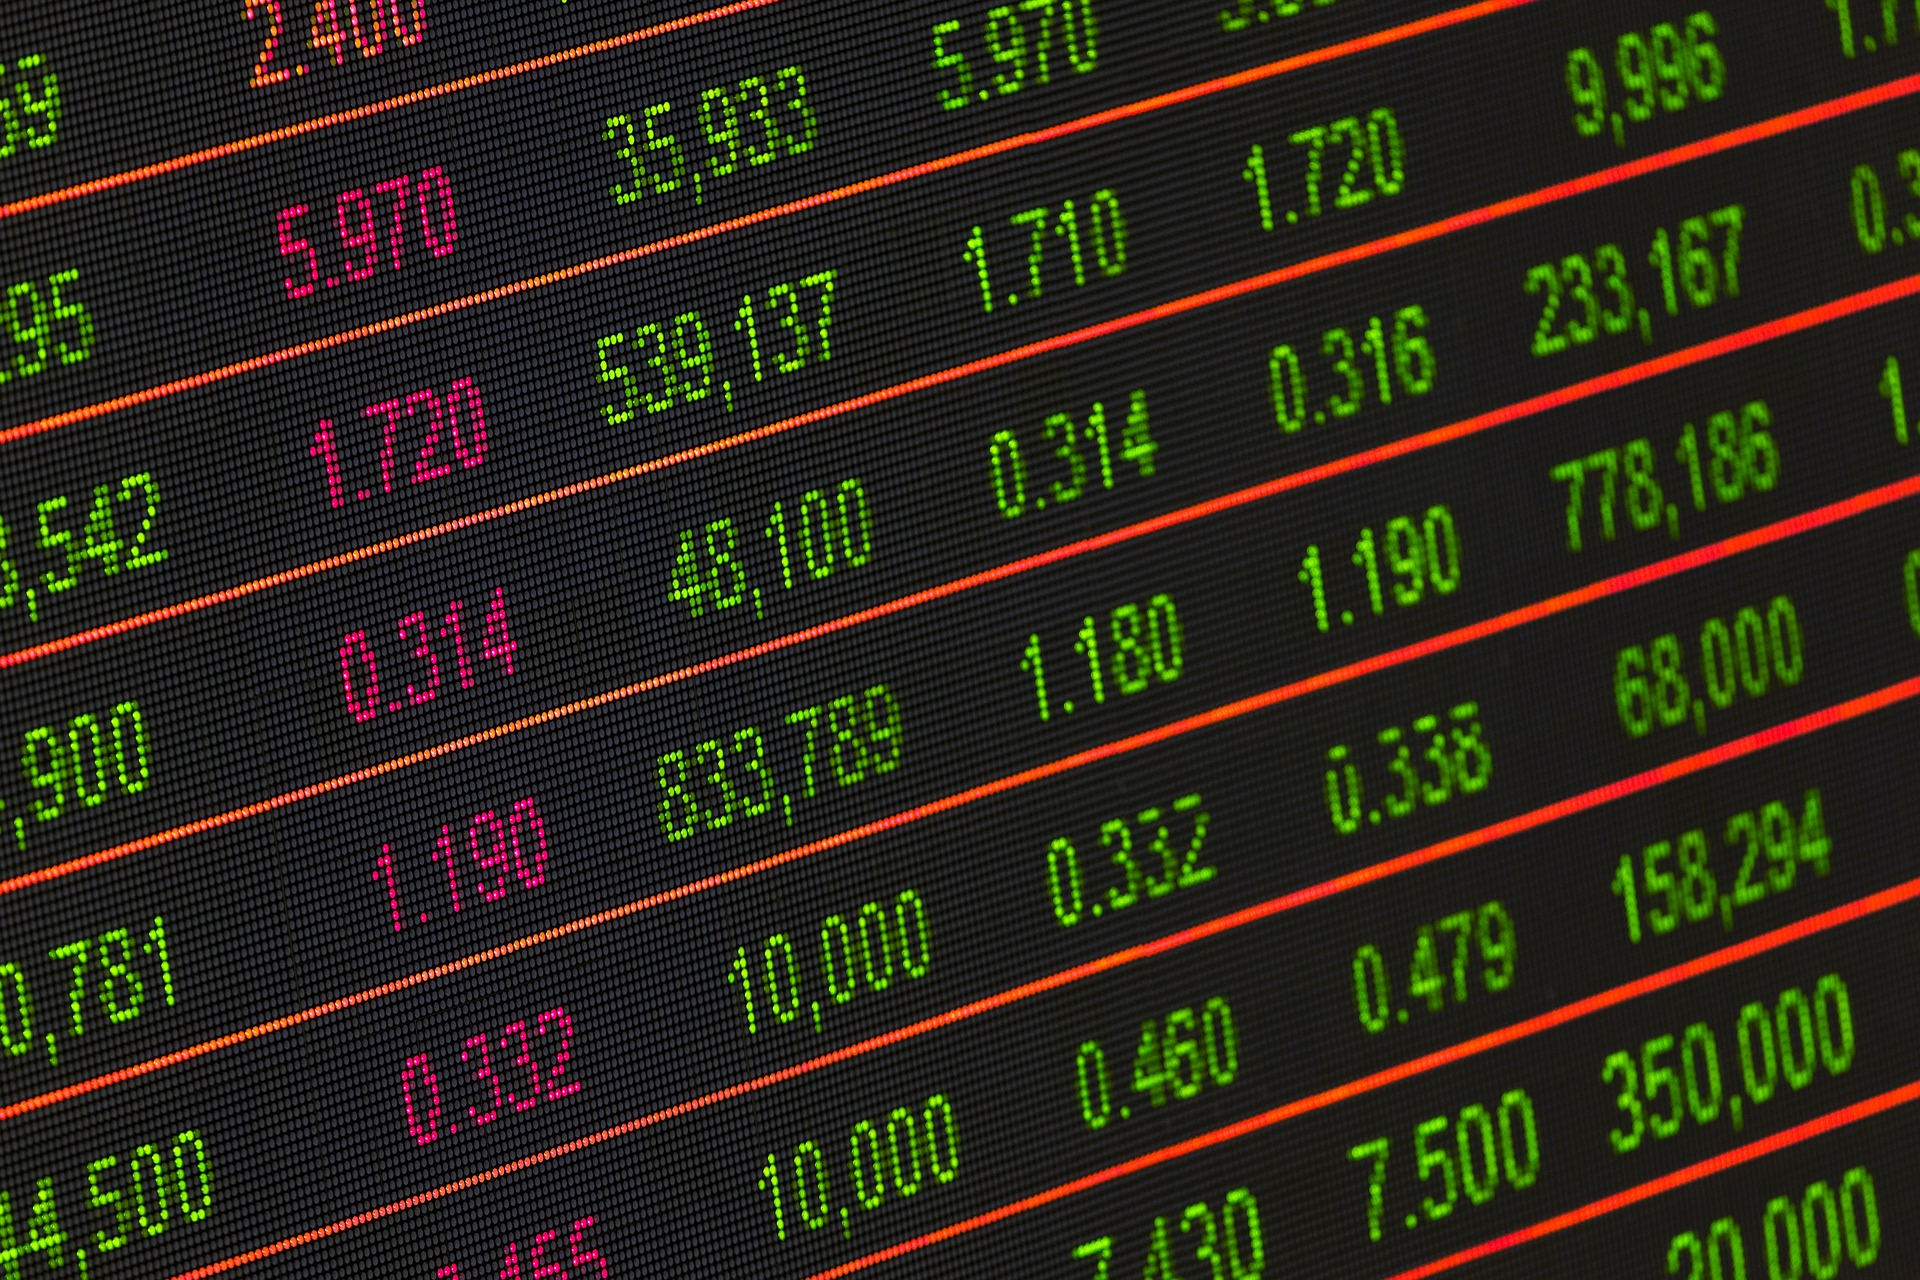 Stock Market Trading Numbers